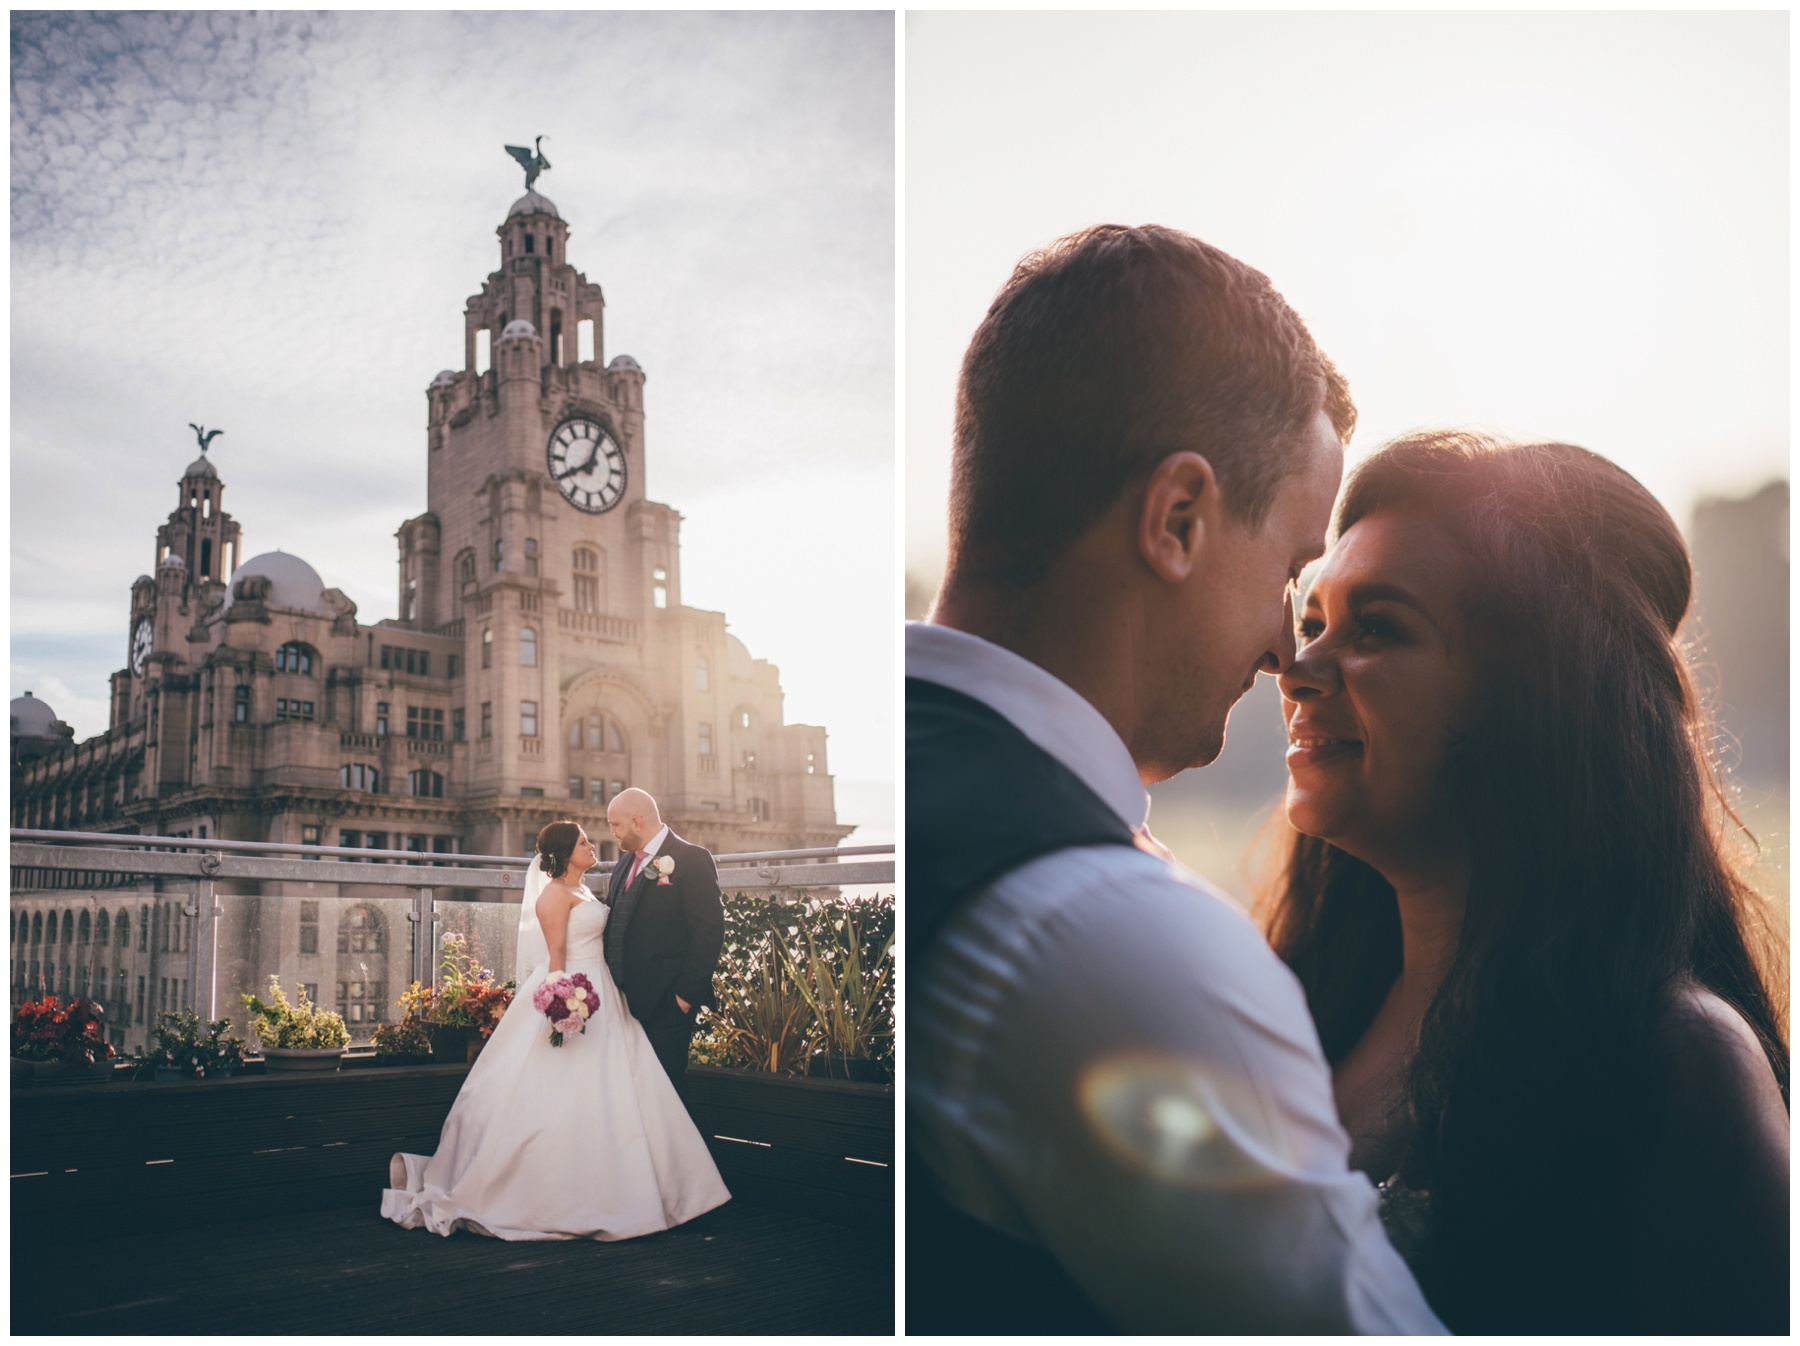 Brides and grooms at Liverpool wedding venues Oh My Oh My, The Liver Building and Aigburth cricket club.